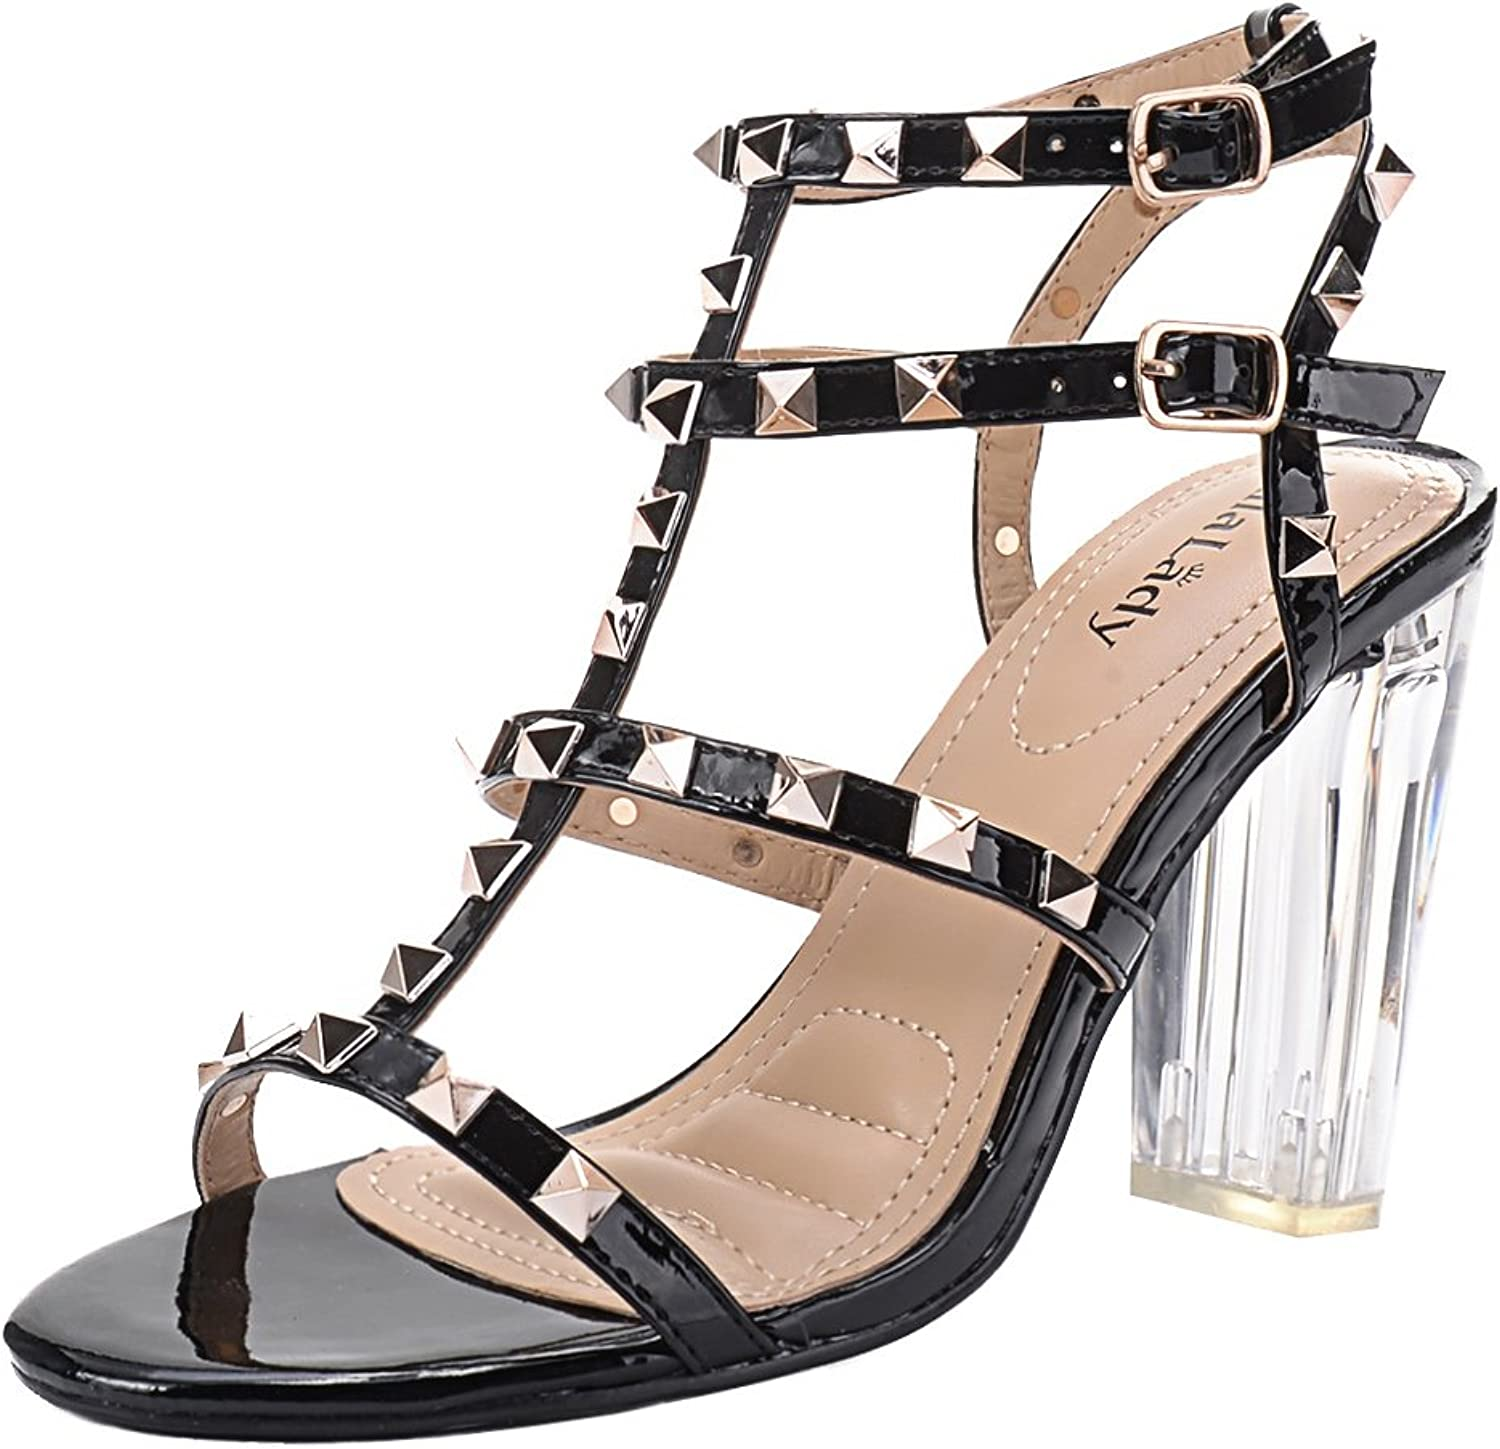 Mila Lady  Erin 08  Women's Studded with Lucite Clear Block Chunky Heel Sandals, Black 7